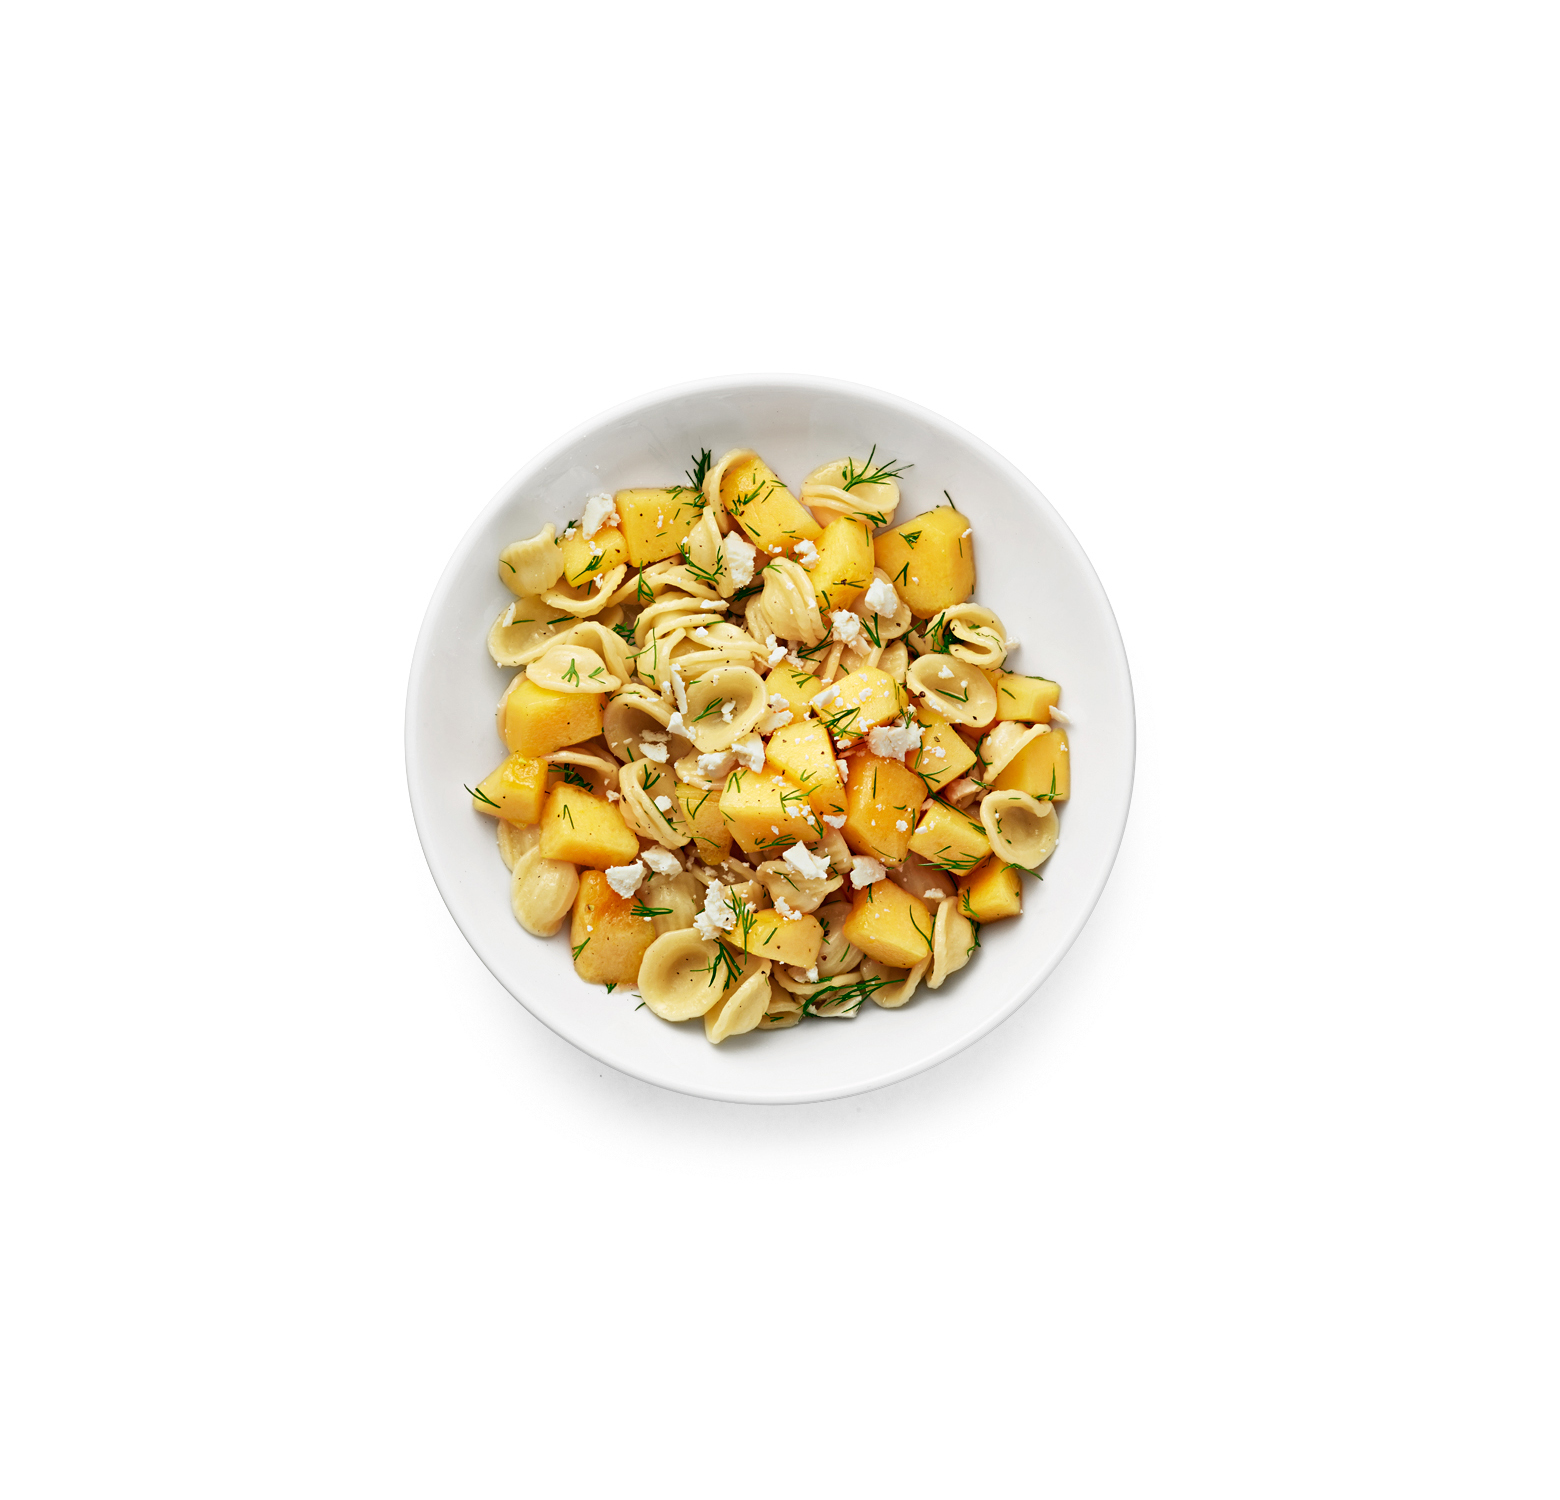 Pasta Salad with Cantaloupe, Feta, and Dill